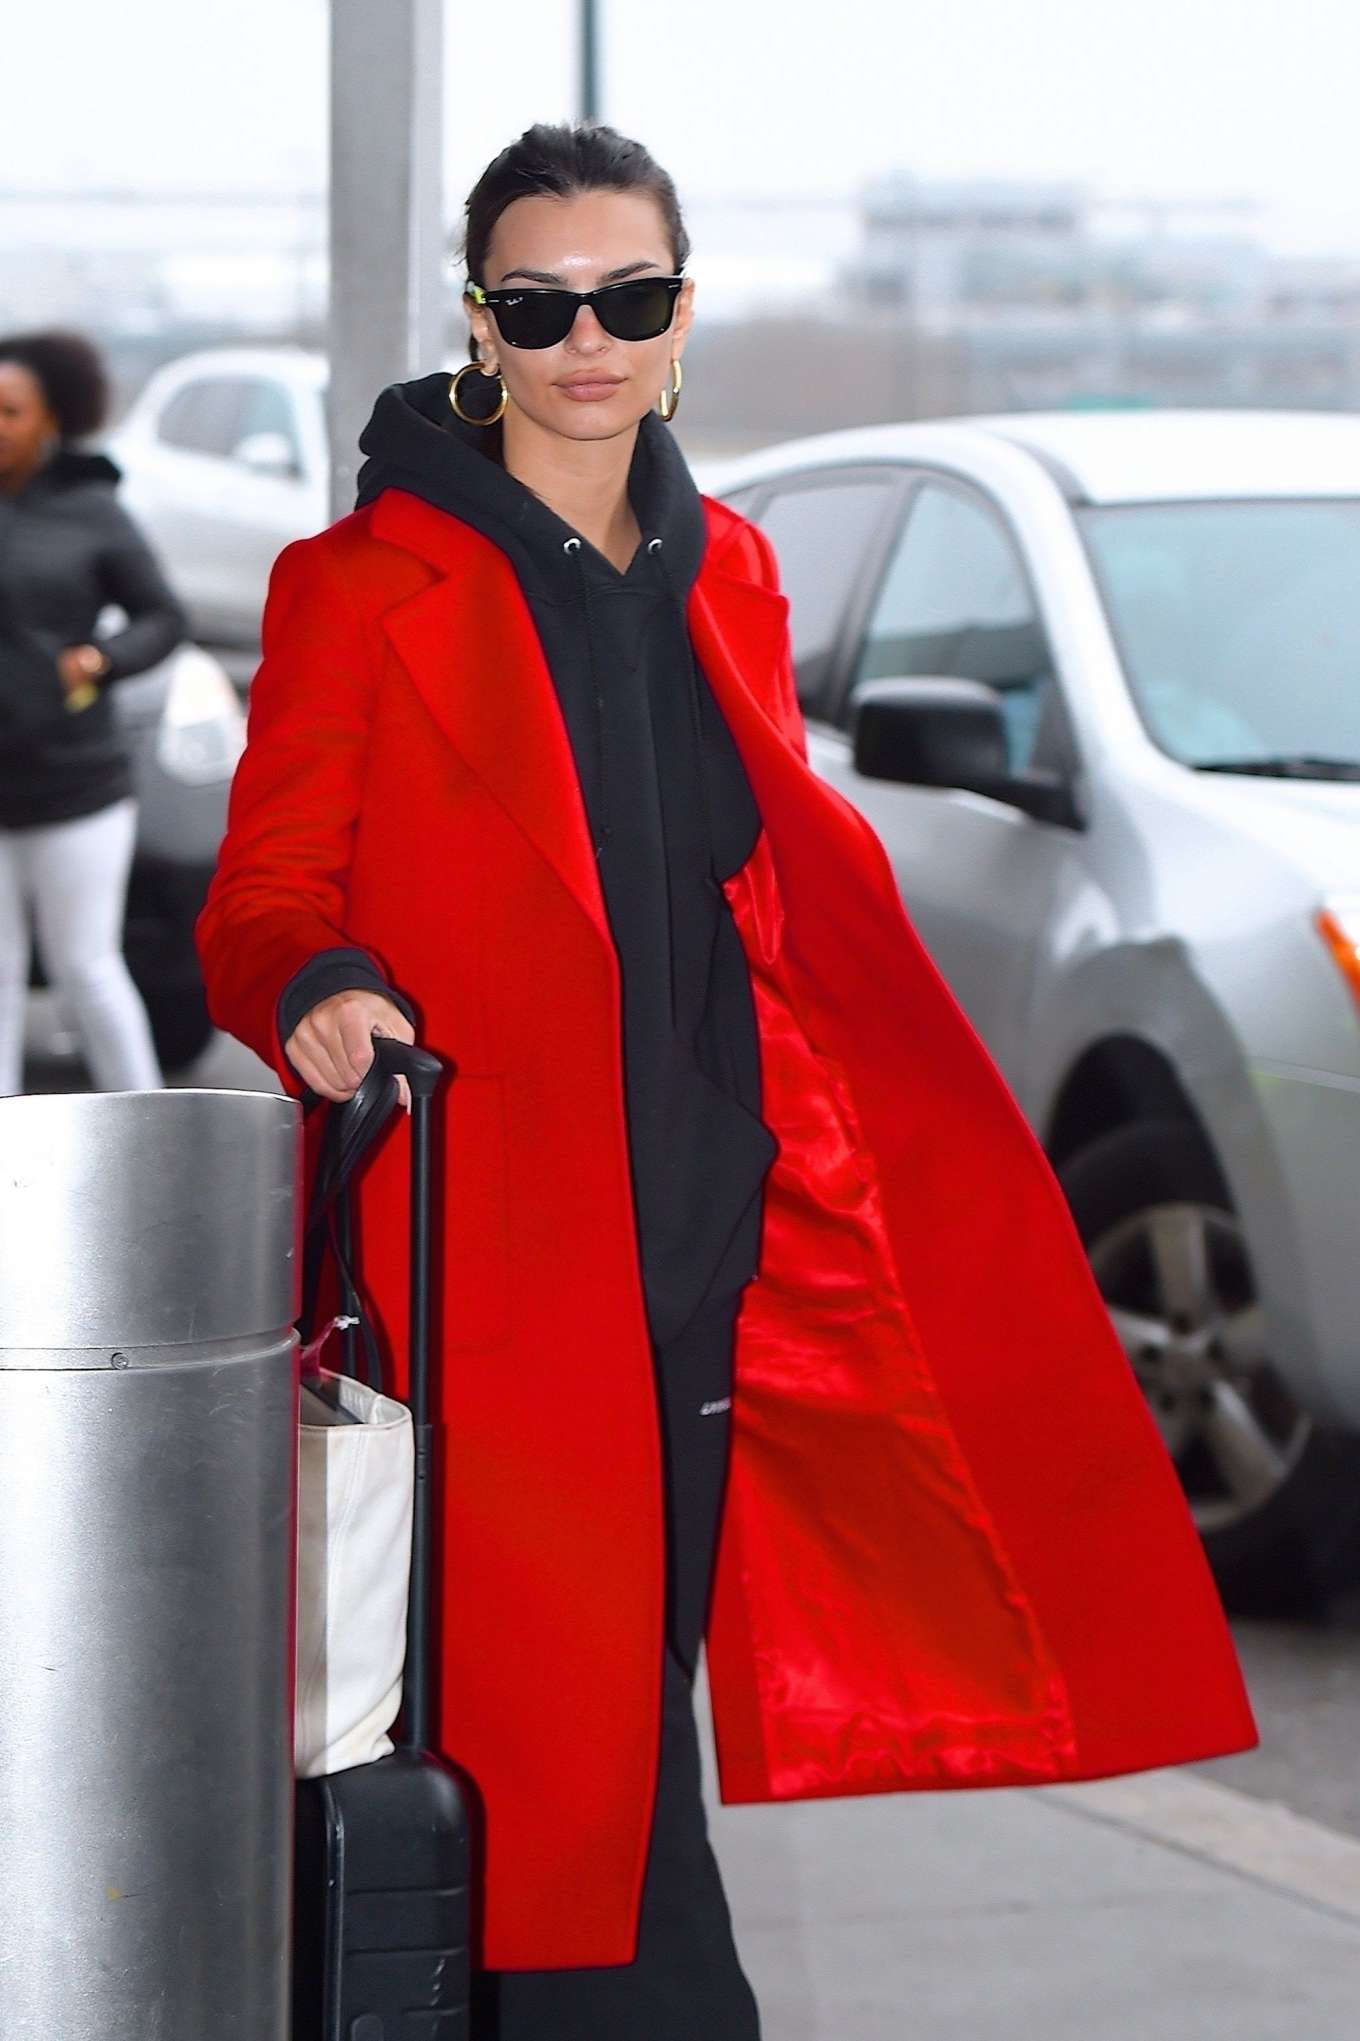 Emily Ratajkowski in red coat ready for flight at JFK airport